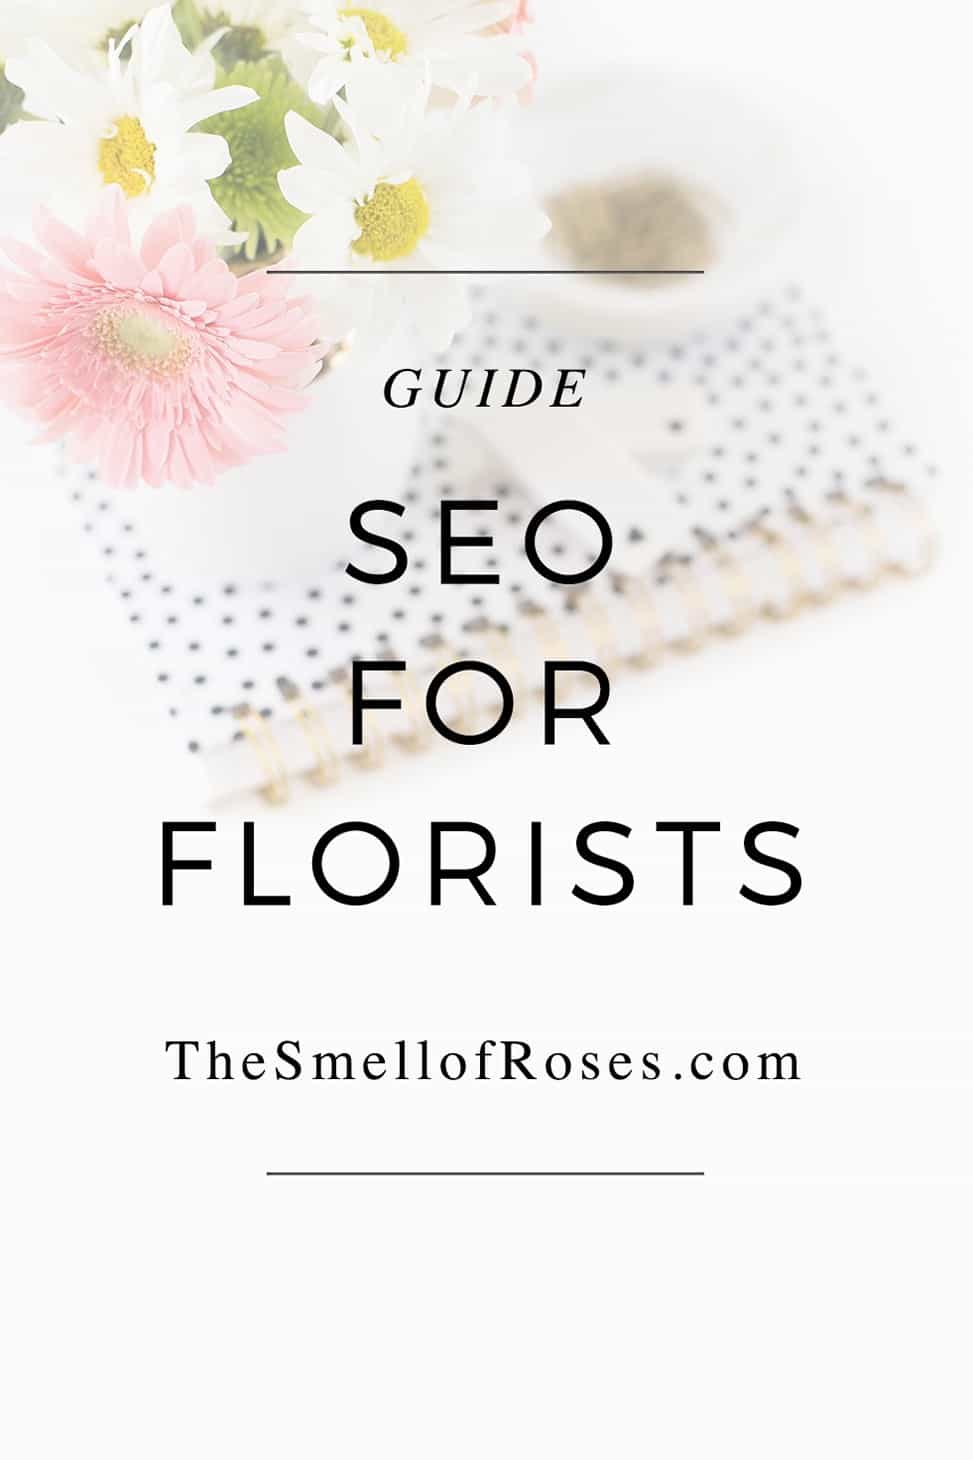 Seo for florists, seo tips for florists, simple seo